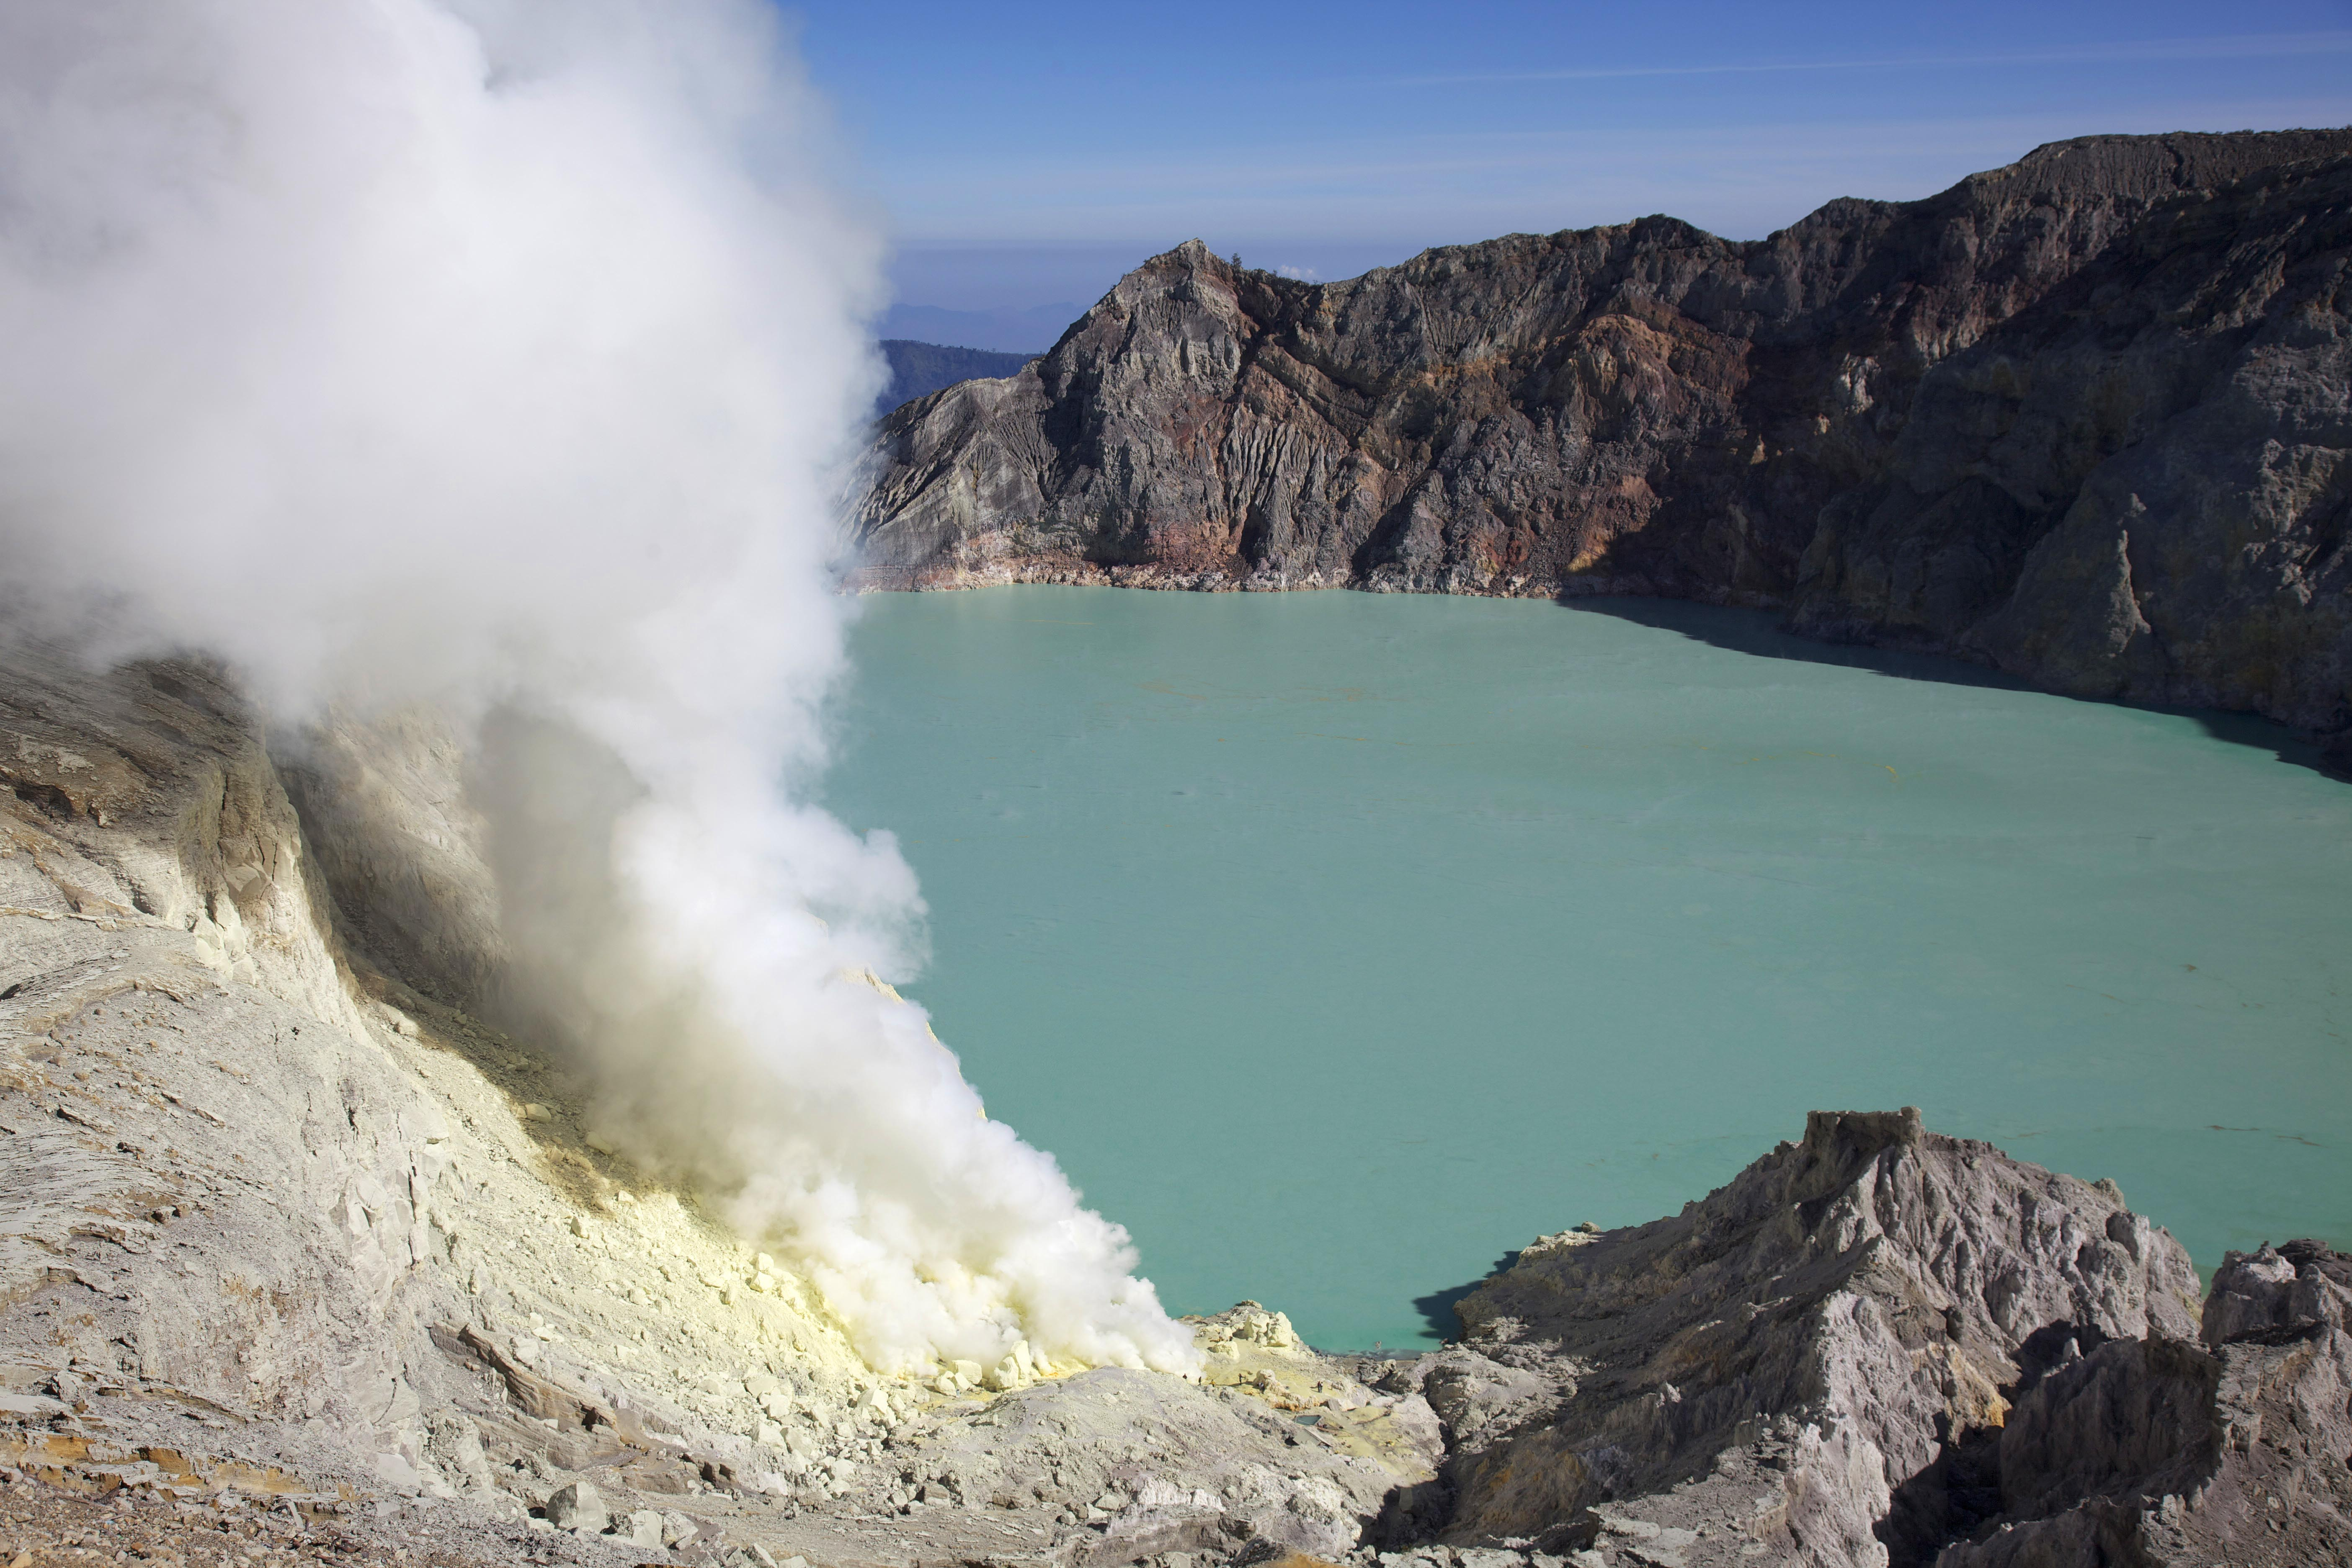 kawah_ijen_-east_java_-indonesia-31july2009.jpg